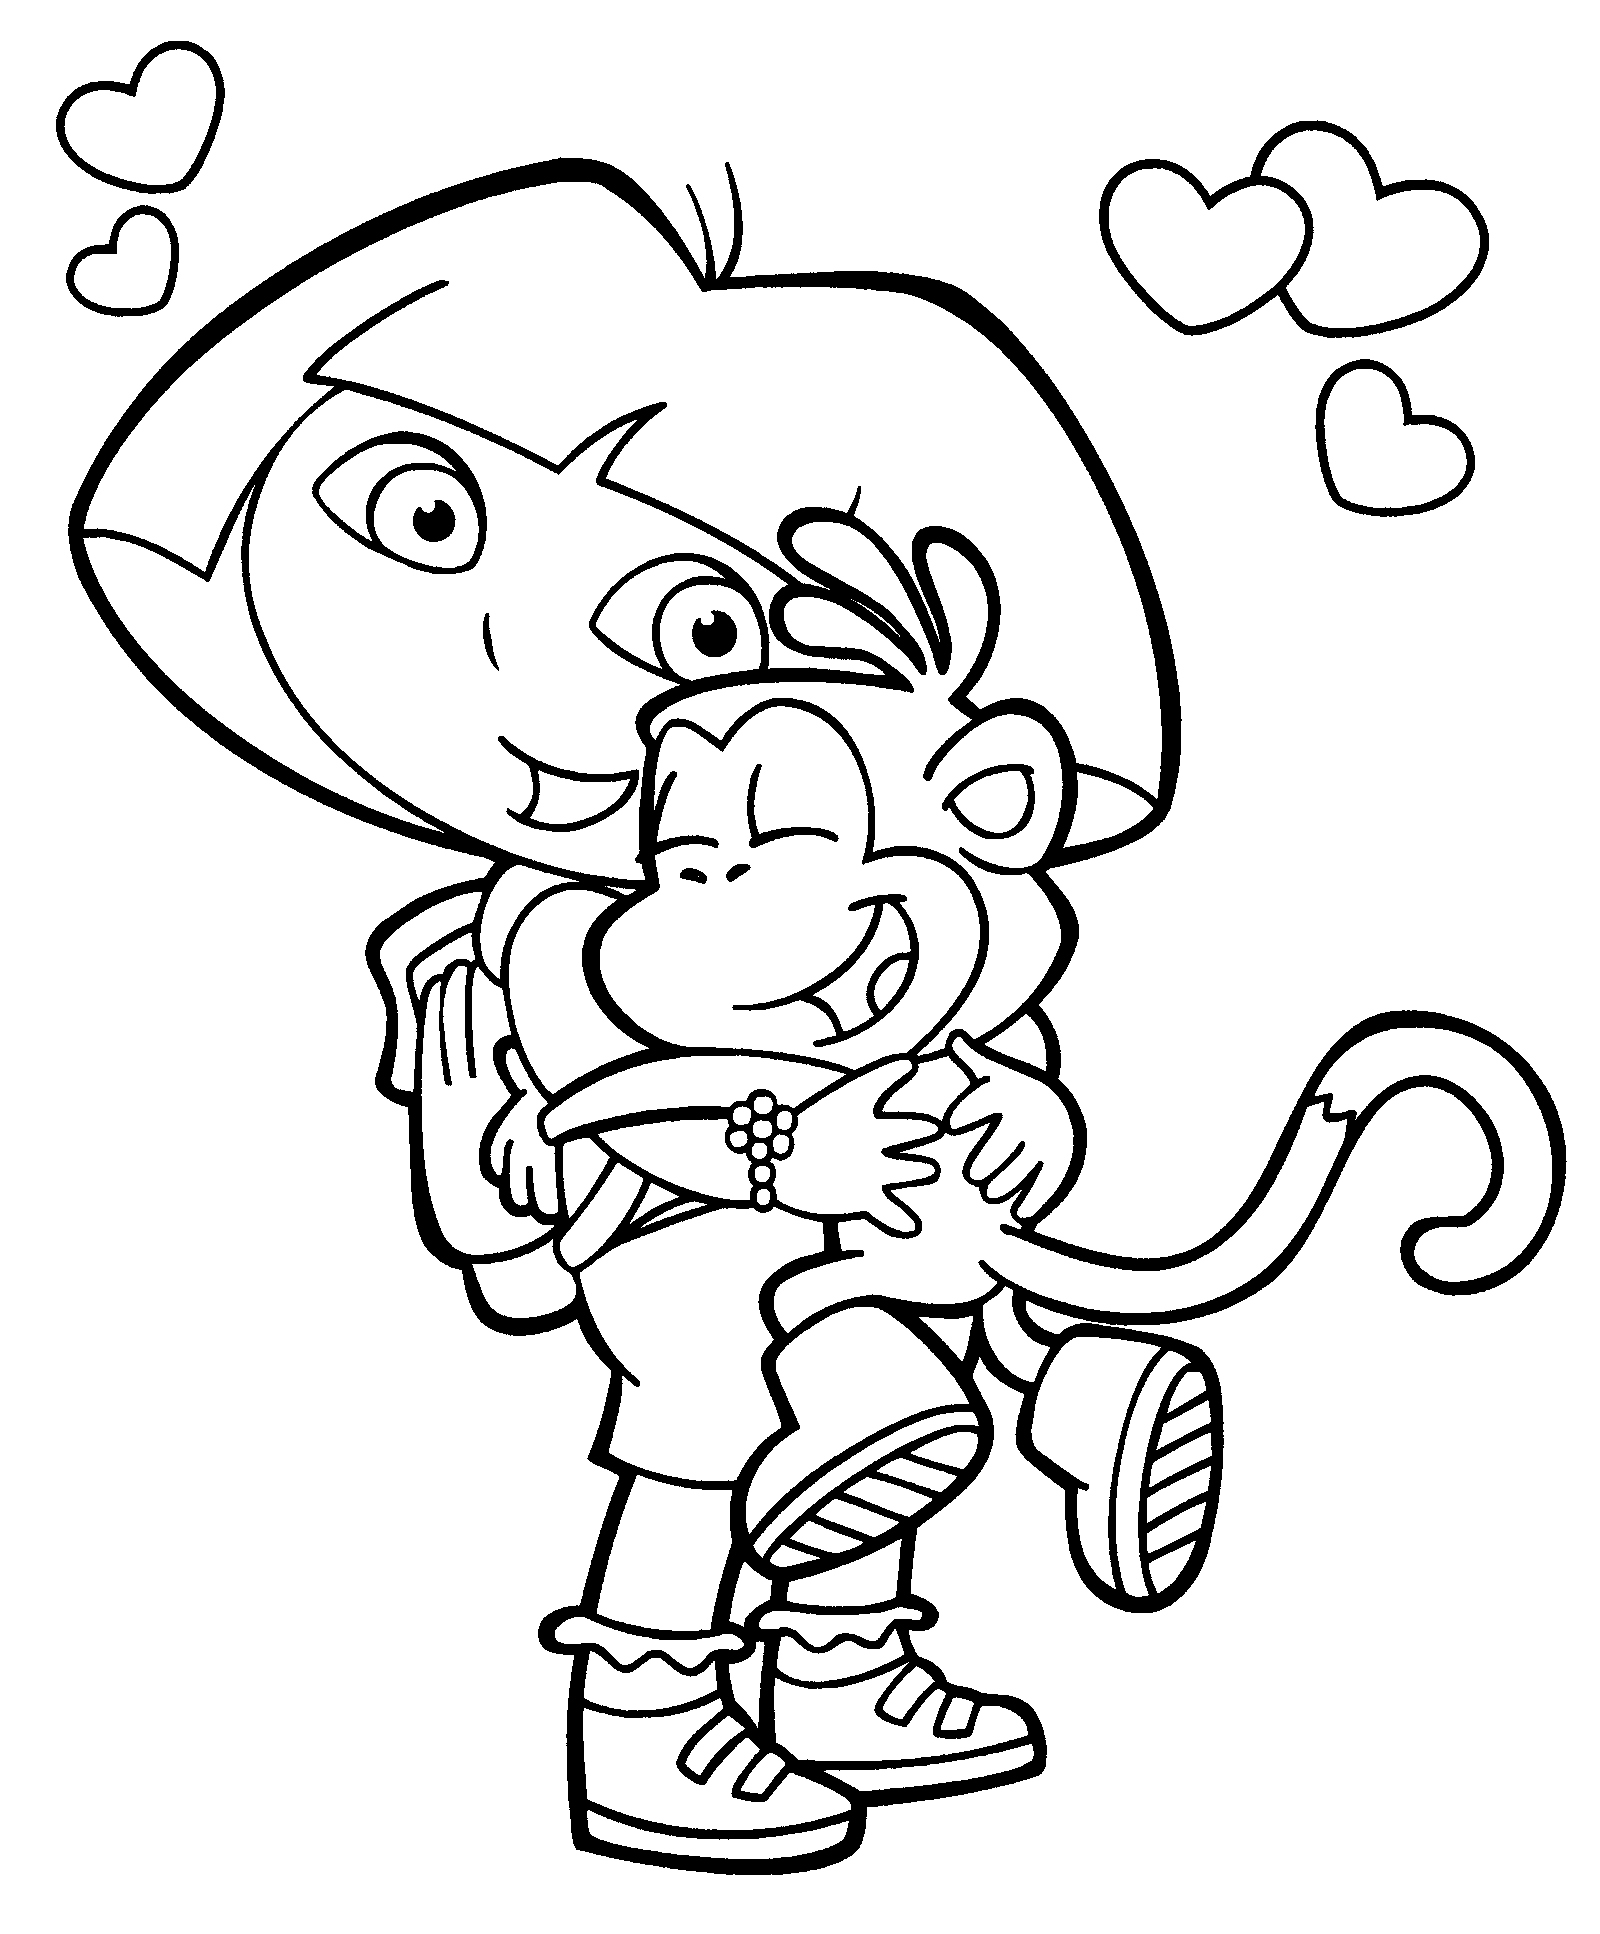 1600x1934 Dora Boots Coloring Page Coloring Pages Birthdays